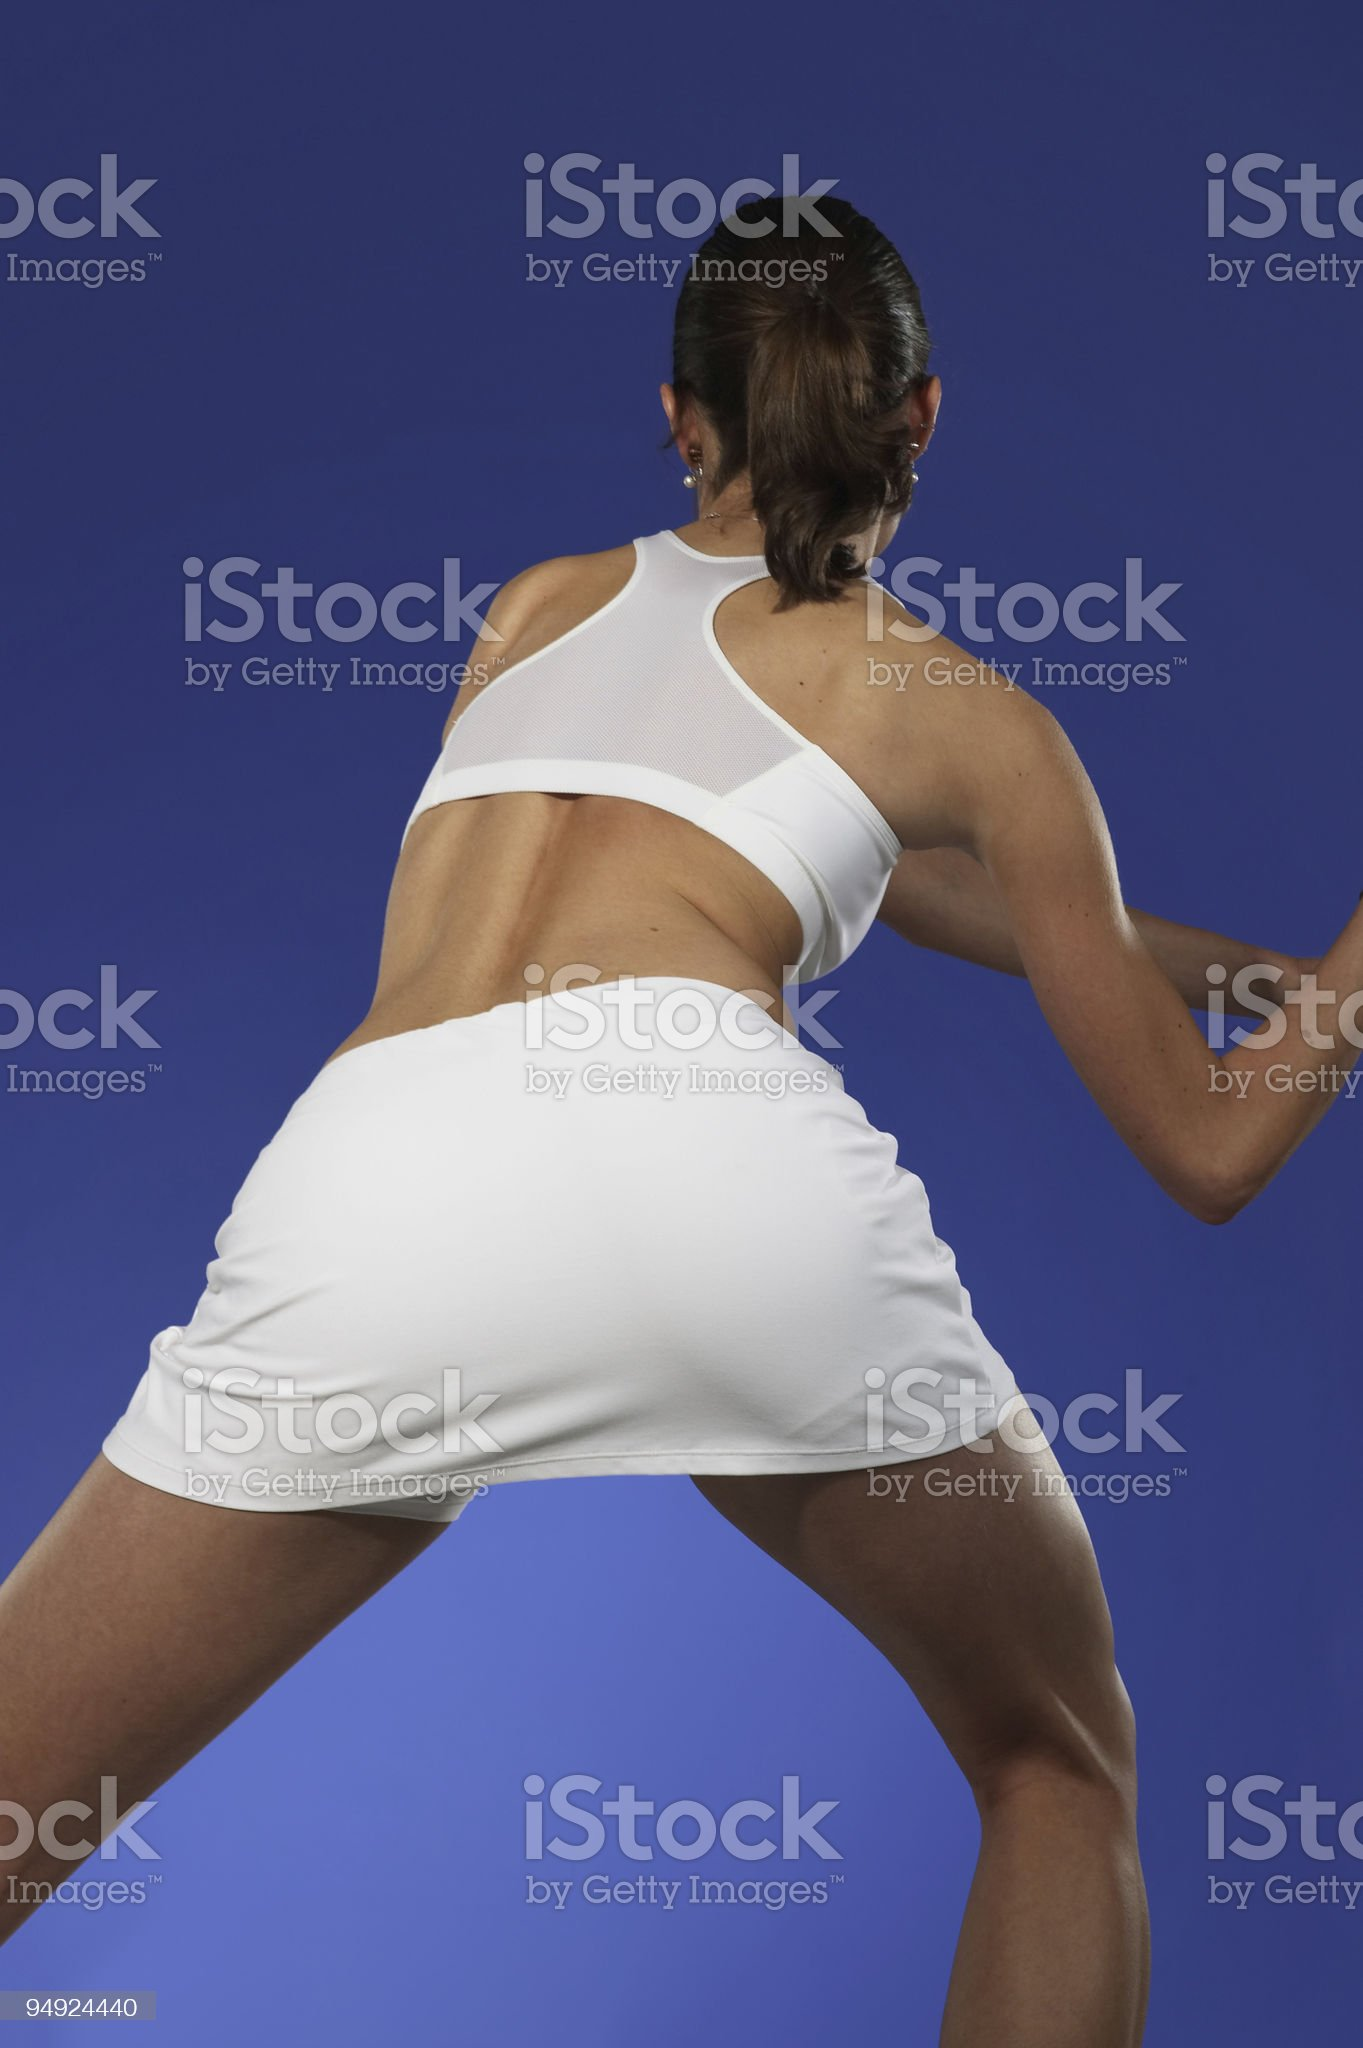 Female tennis player from the back royalty-free stock photo